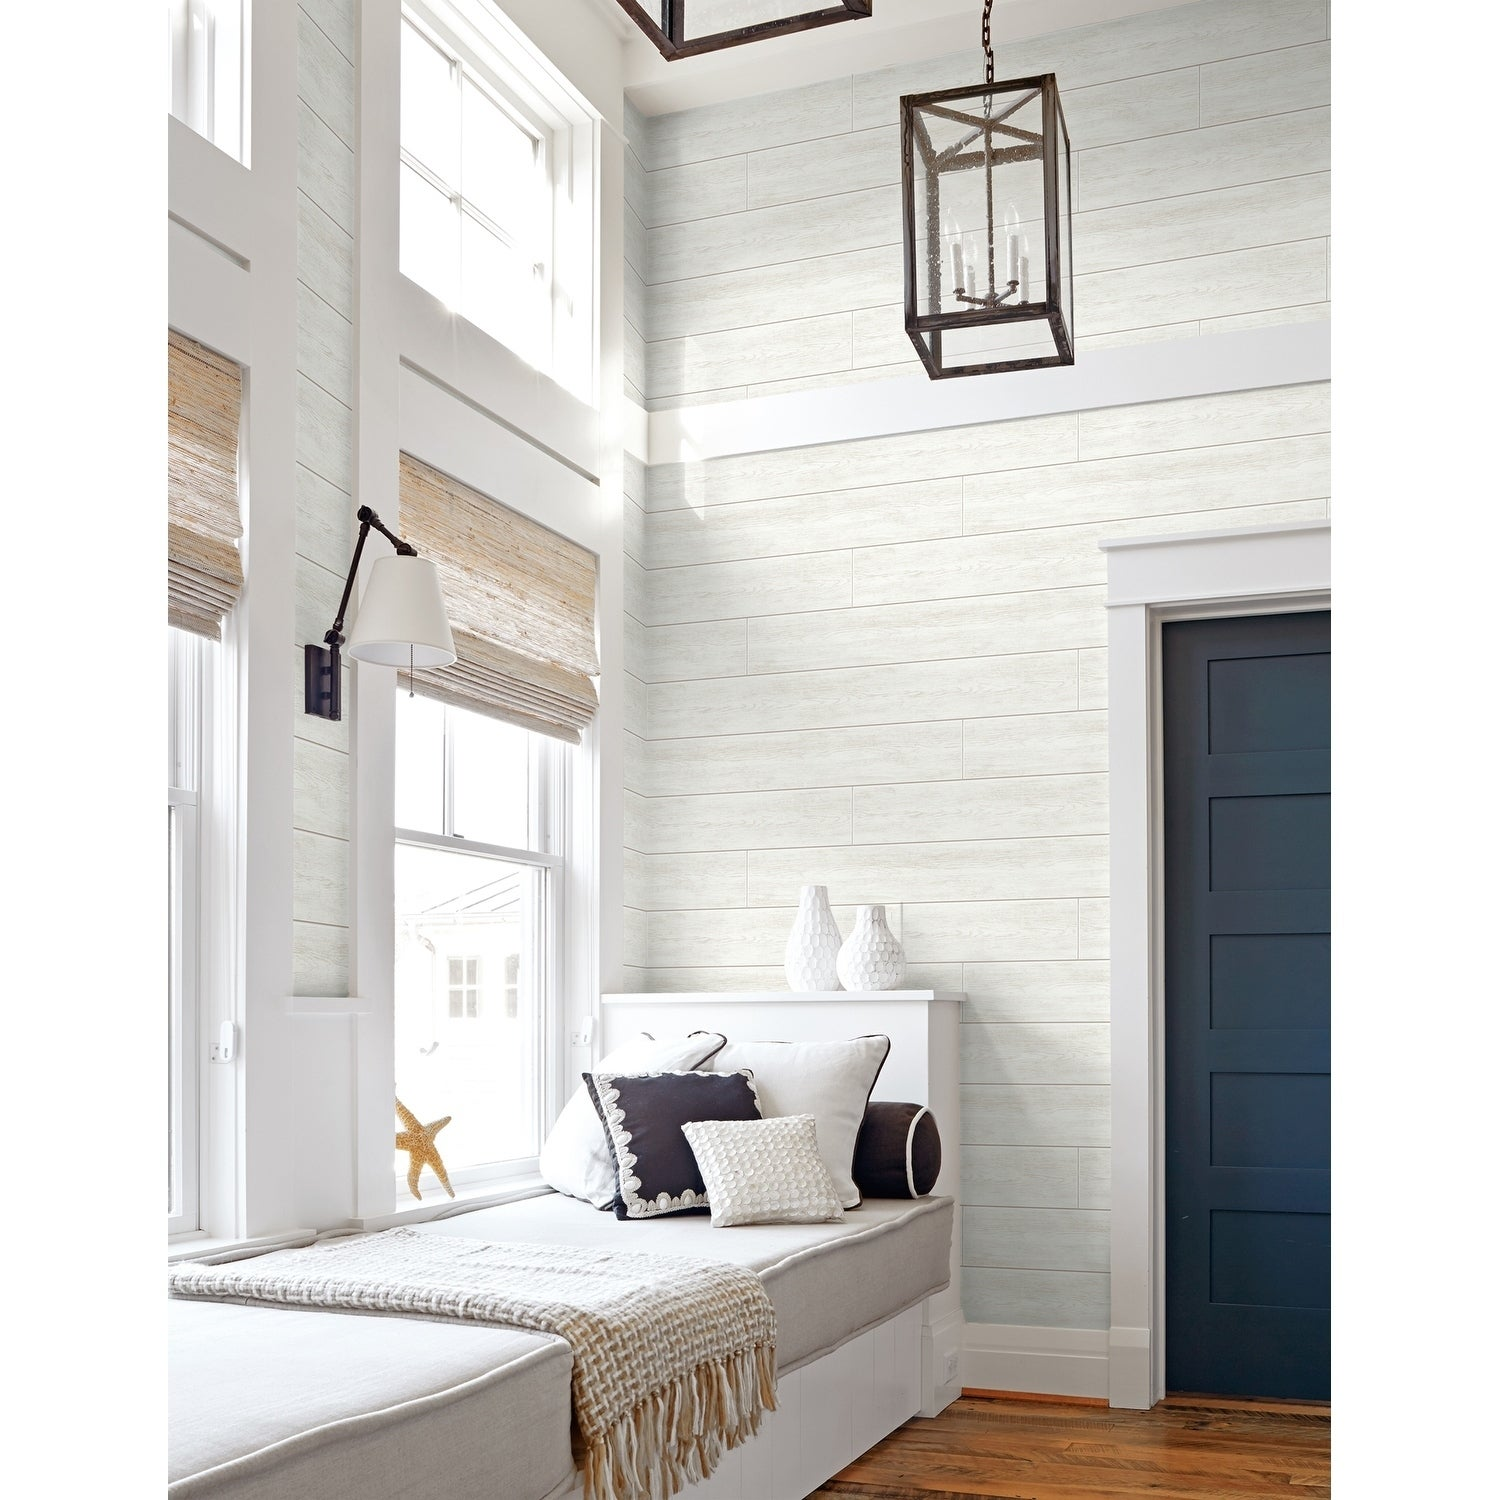 NextWall Off White Shiplap Peel and Stick Removable Wallpaper 20.5 in. W x 18 ft. L 4316c8e3 0275 409e a280 eeca4f481d7f